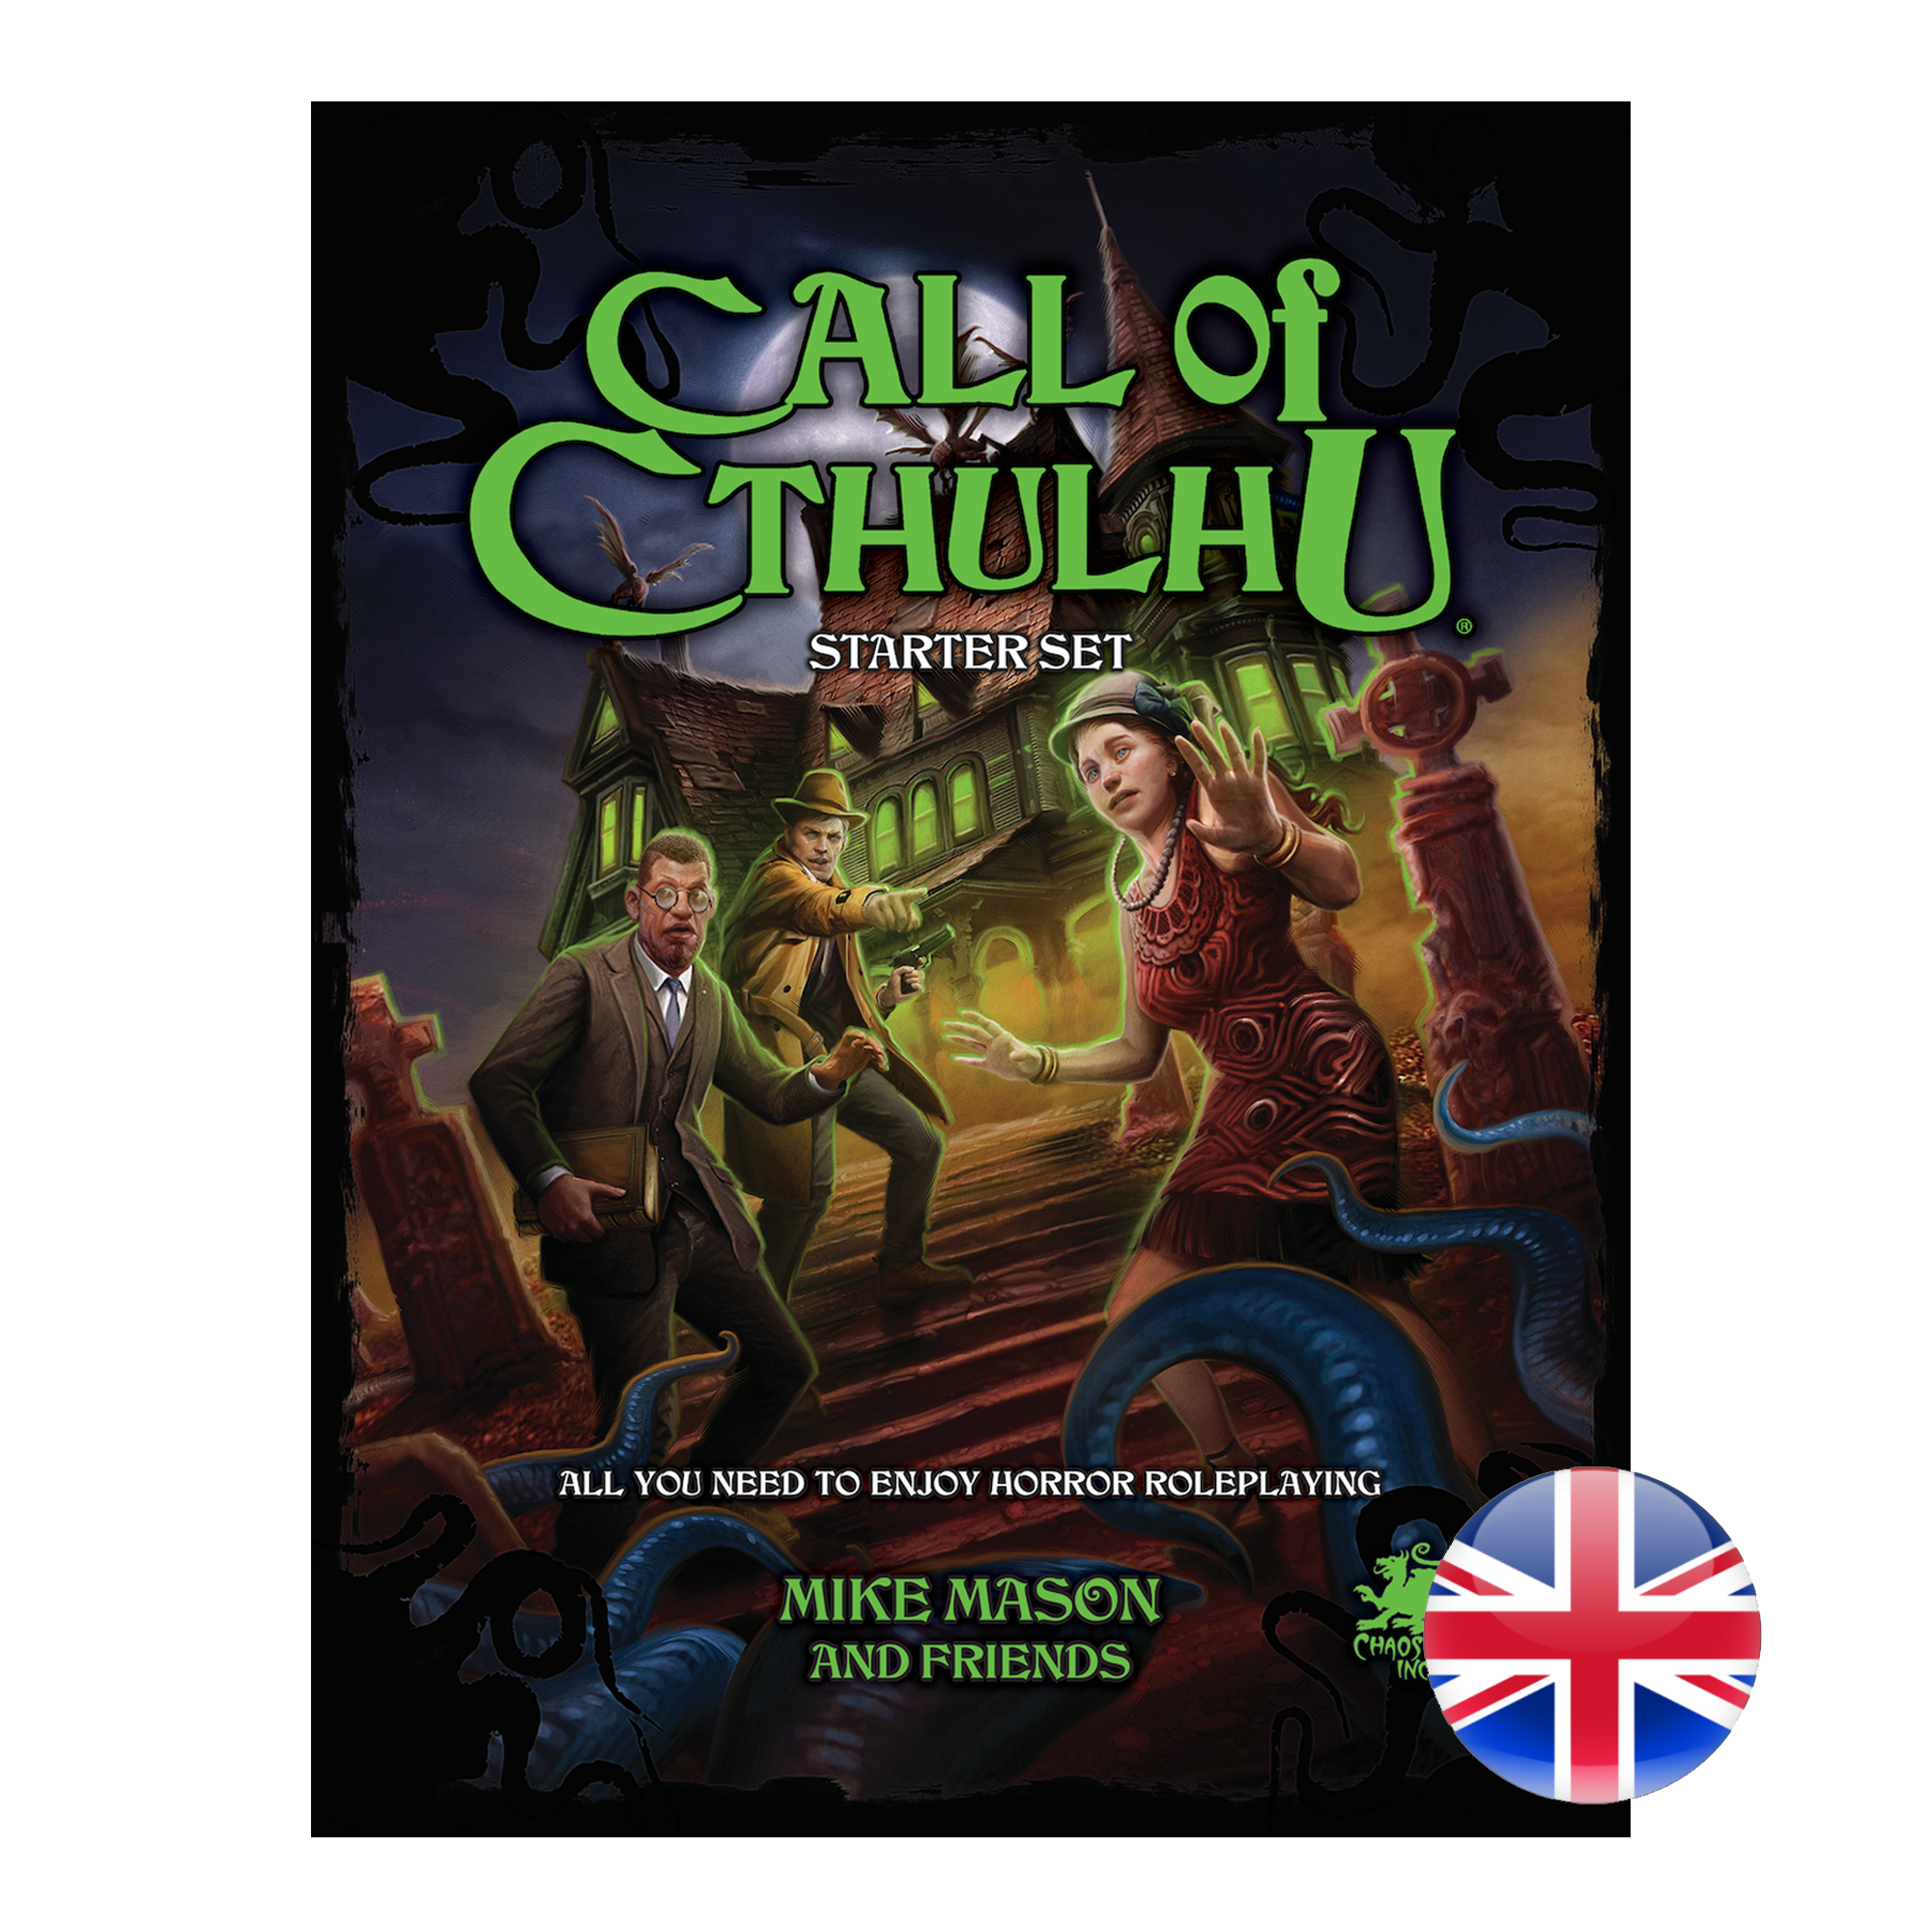 Chaosium Call of Cthulhu RPG 7th Edition Starter Set